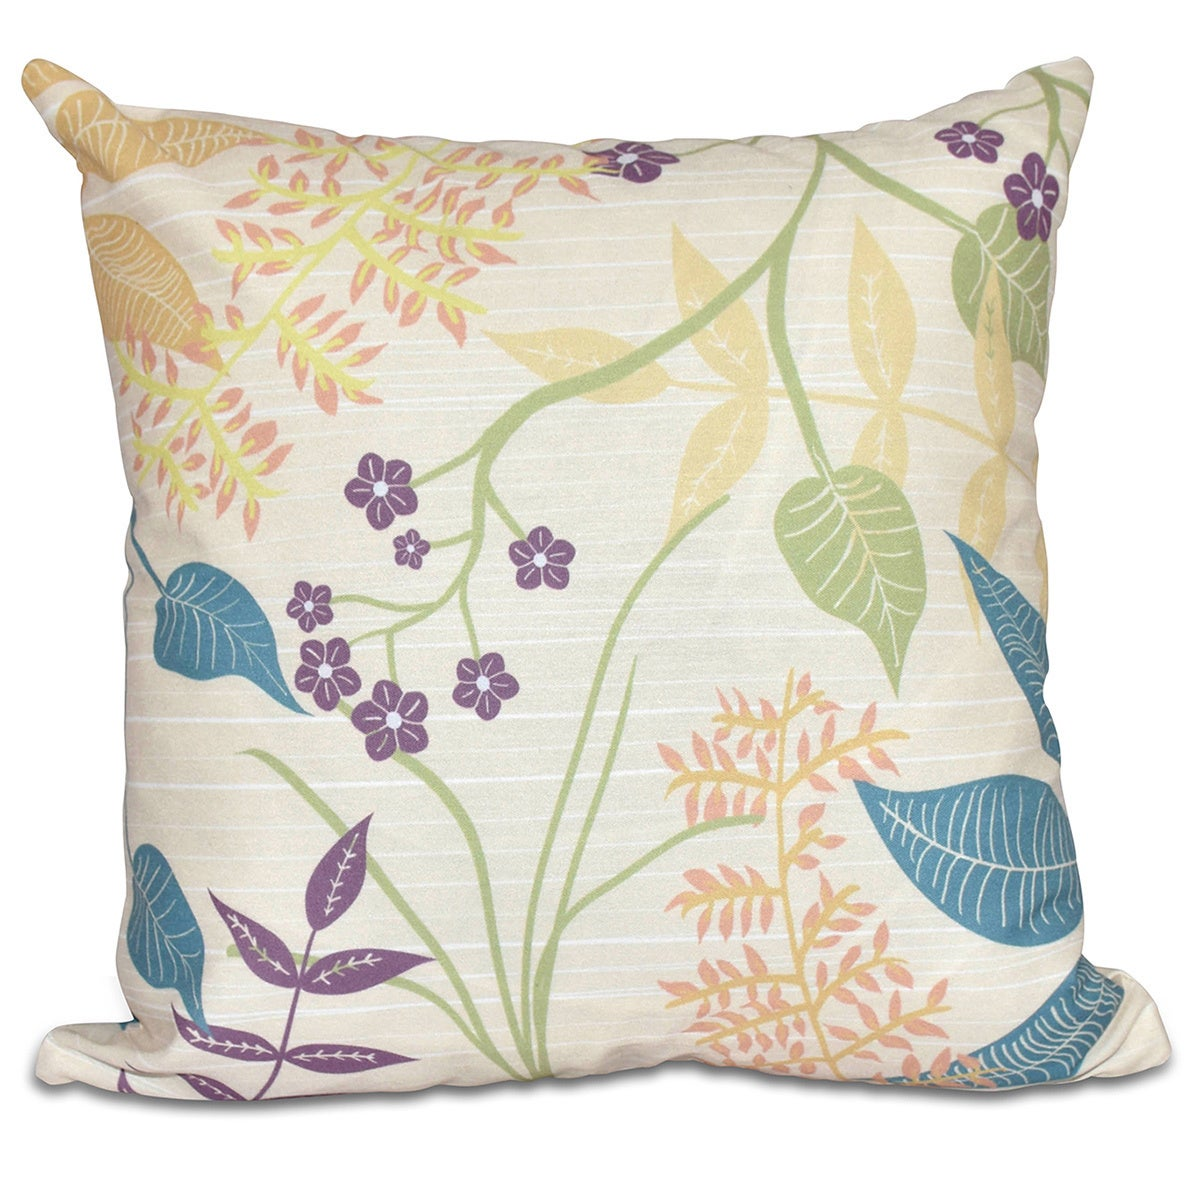 Botanical Floral Print Pillow (Grey)